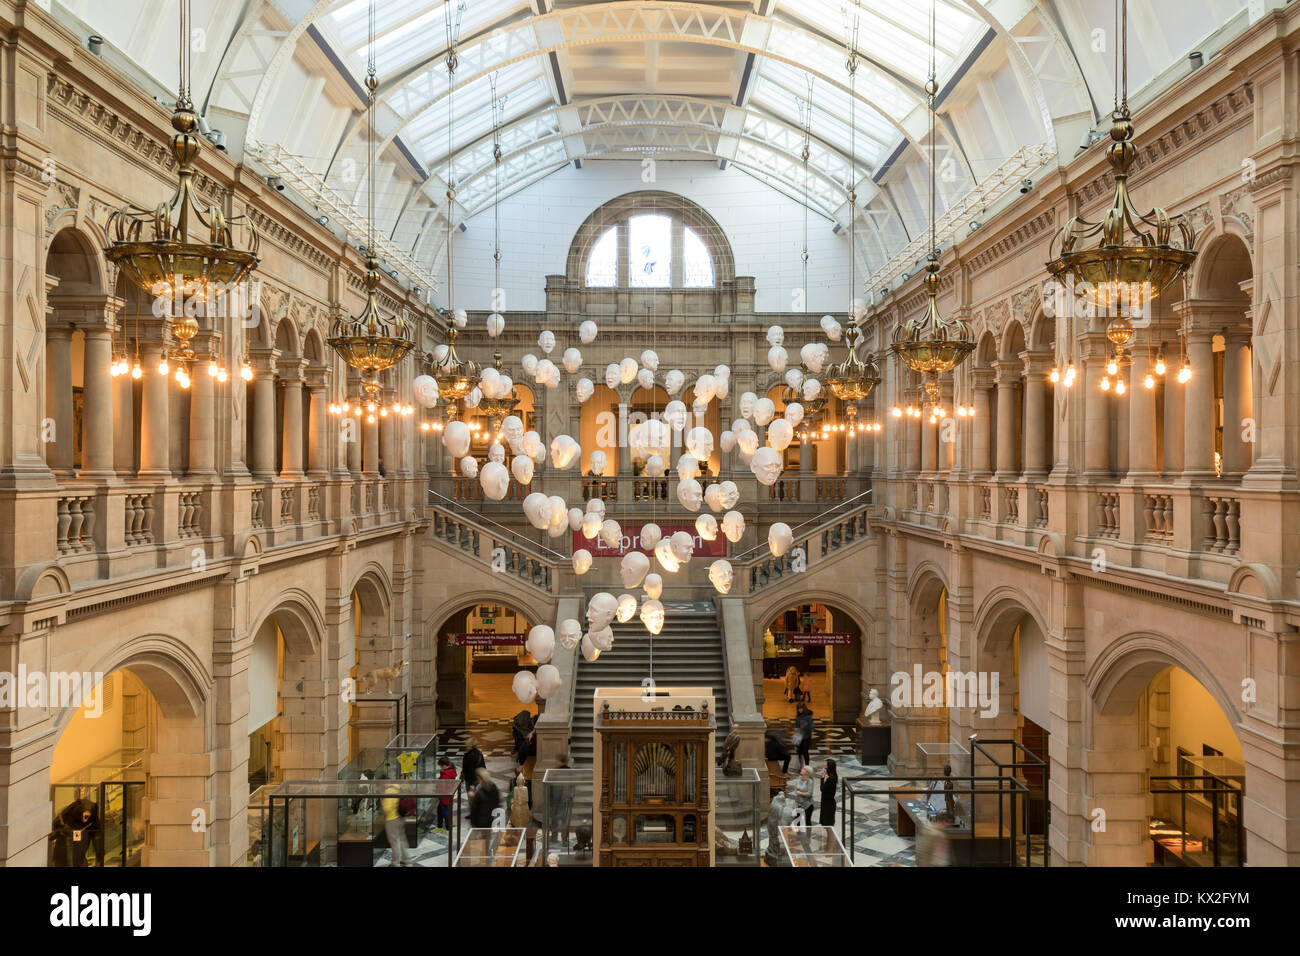 The Floating Heads installation by Sophie Cave at Kelvingrove Art Gallery and Museum, Glasgow, Scotland, UK - Stock Image